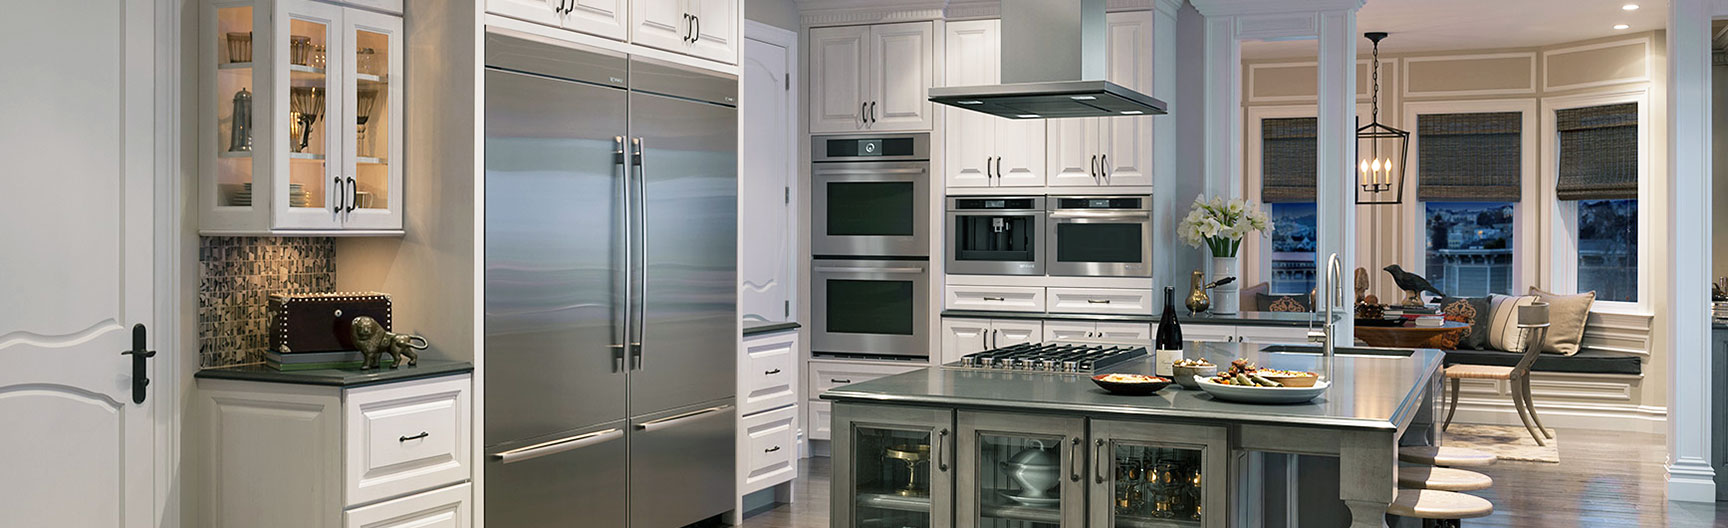 Uncategorized Stores That Sell Kitchen Appliances pacific sales kitchen home see our jenn air collection